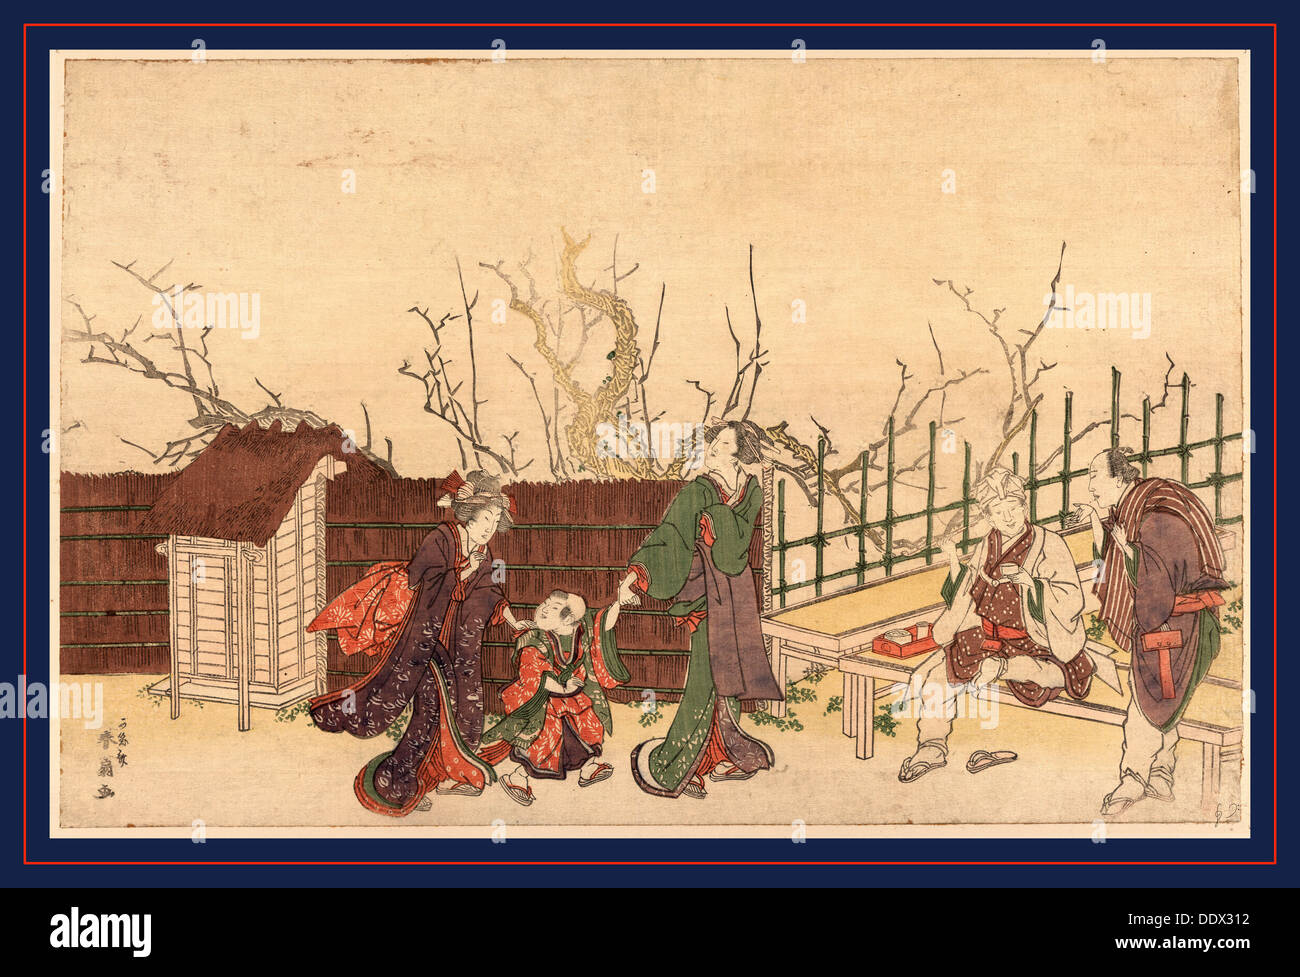 Kameido umeyashiki, A villa in Kamedo. [181-], 1 print : woodcut, color ; 24.7 x 37.8 cm., Print shows two men and two women - Stock Image